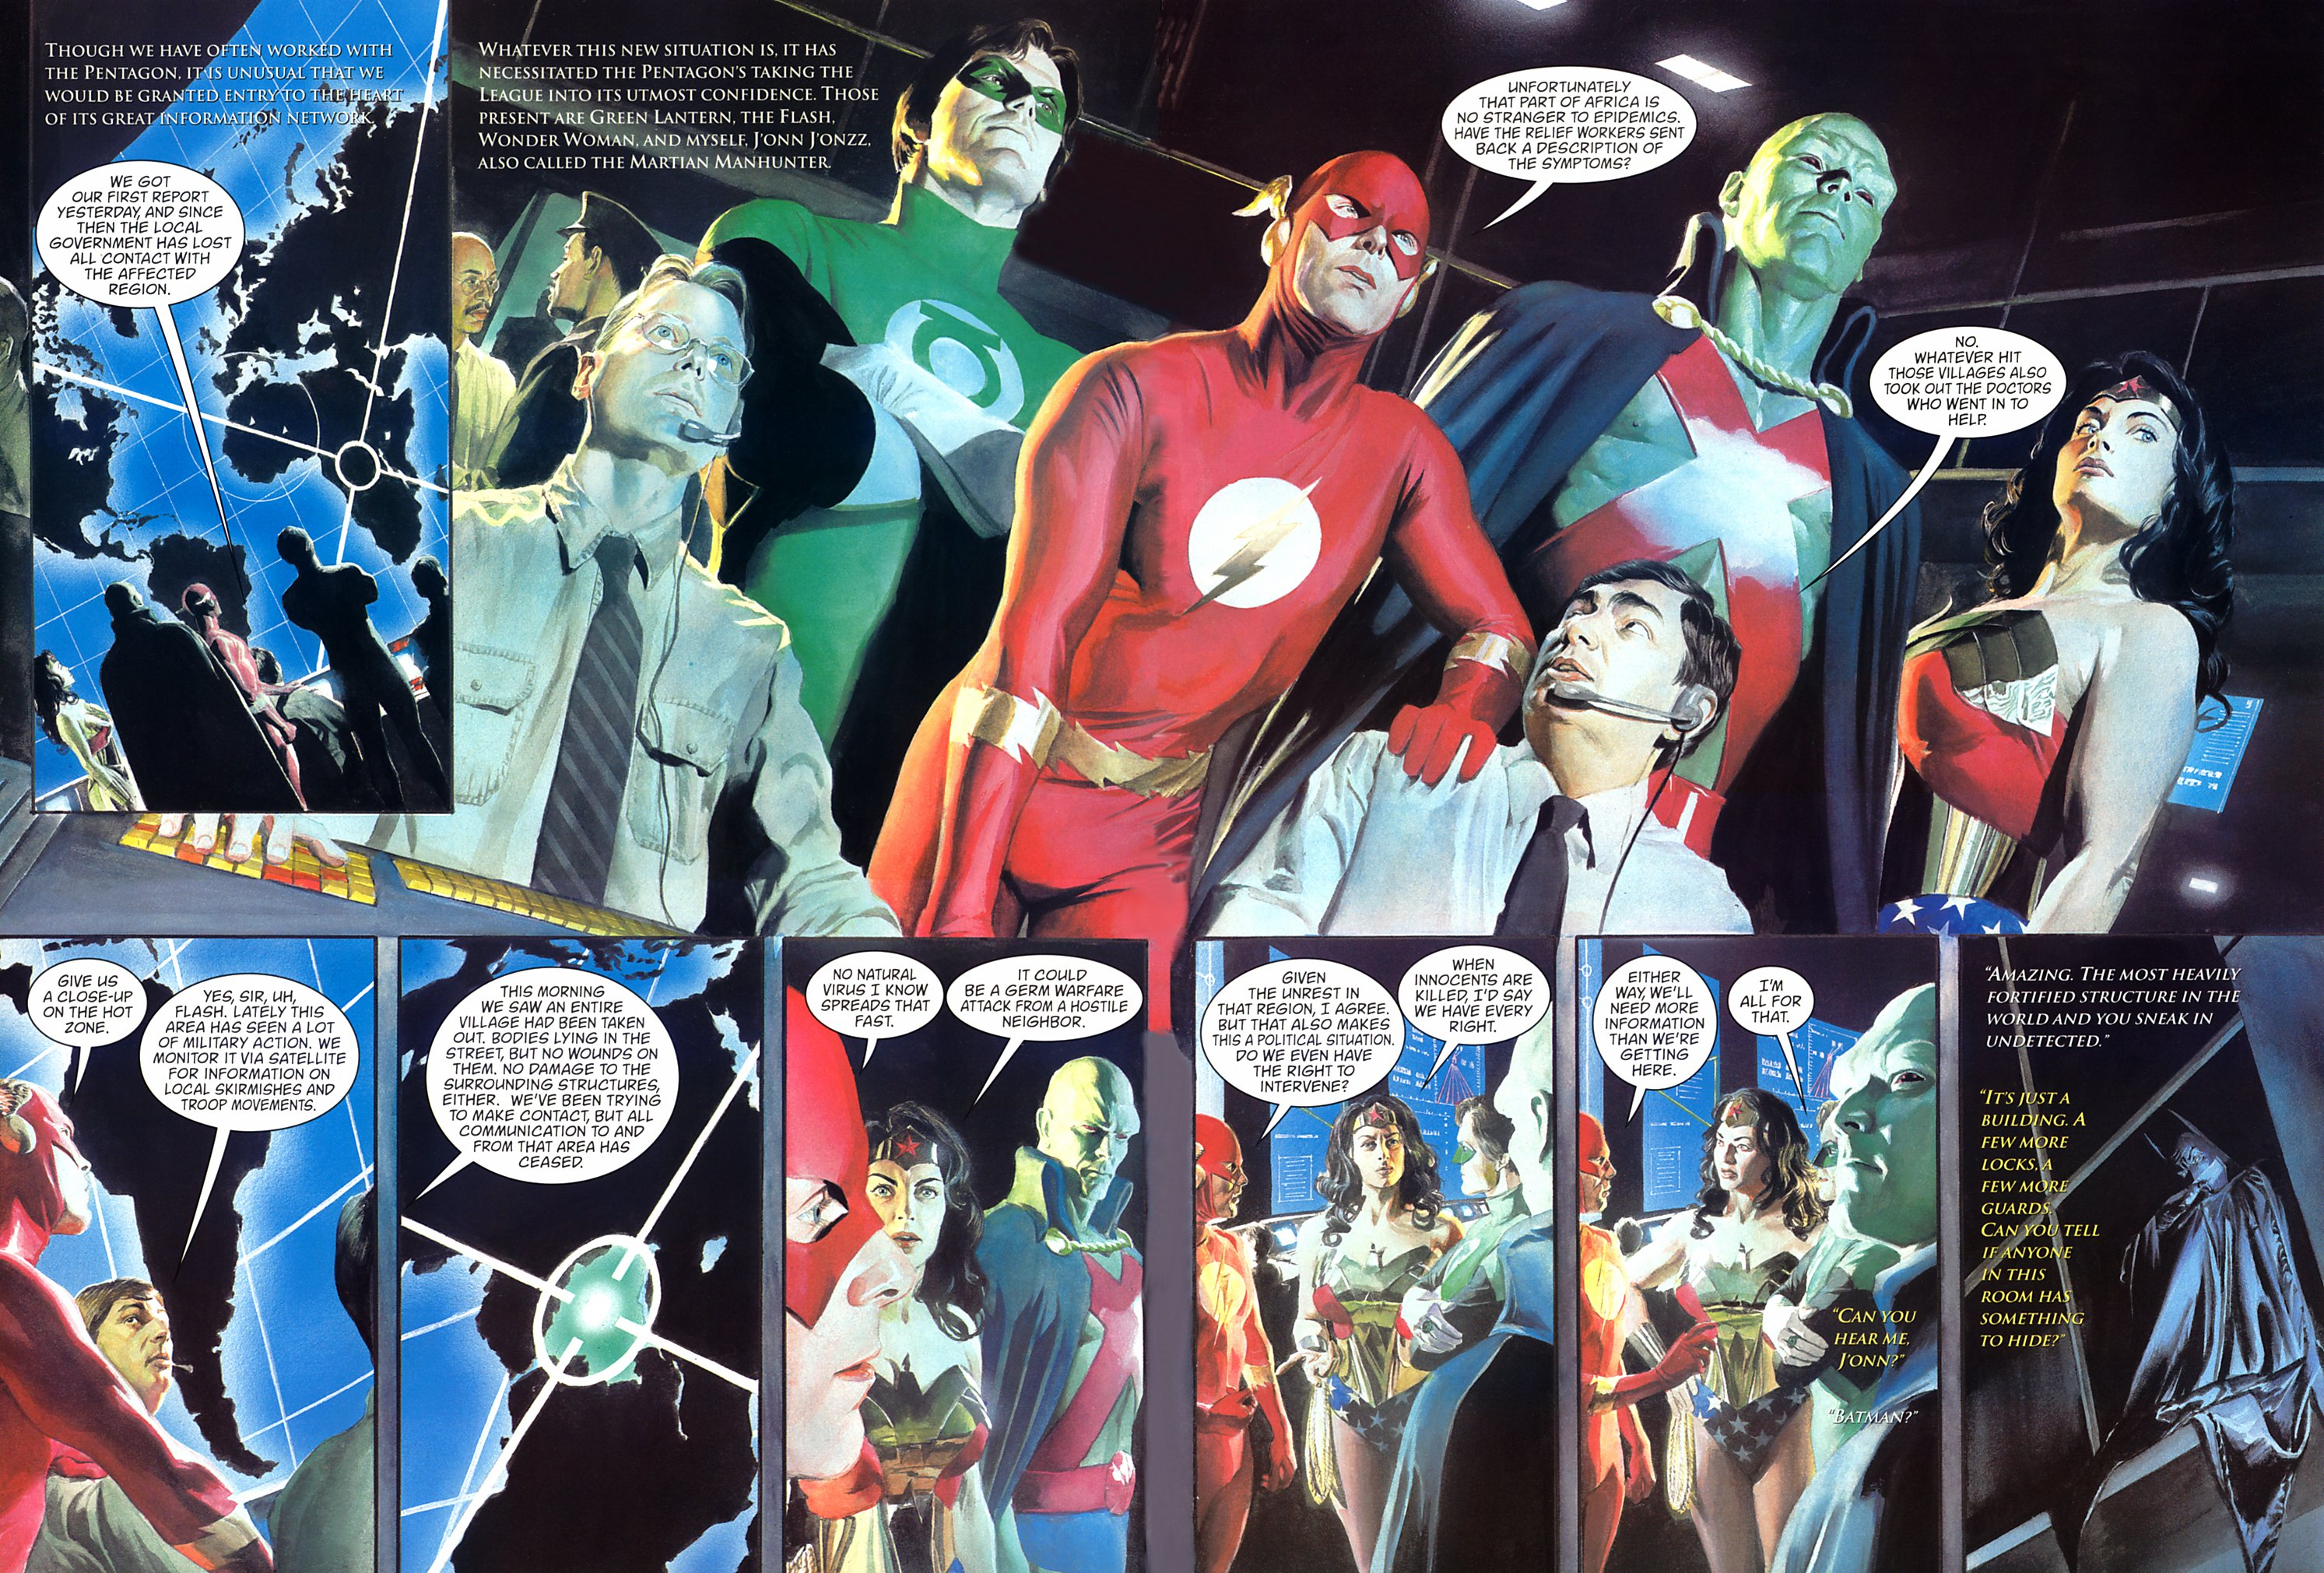 JLA Liberty and Justice review